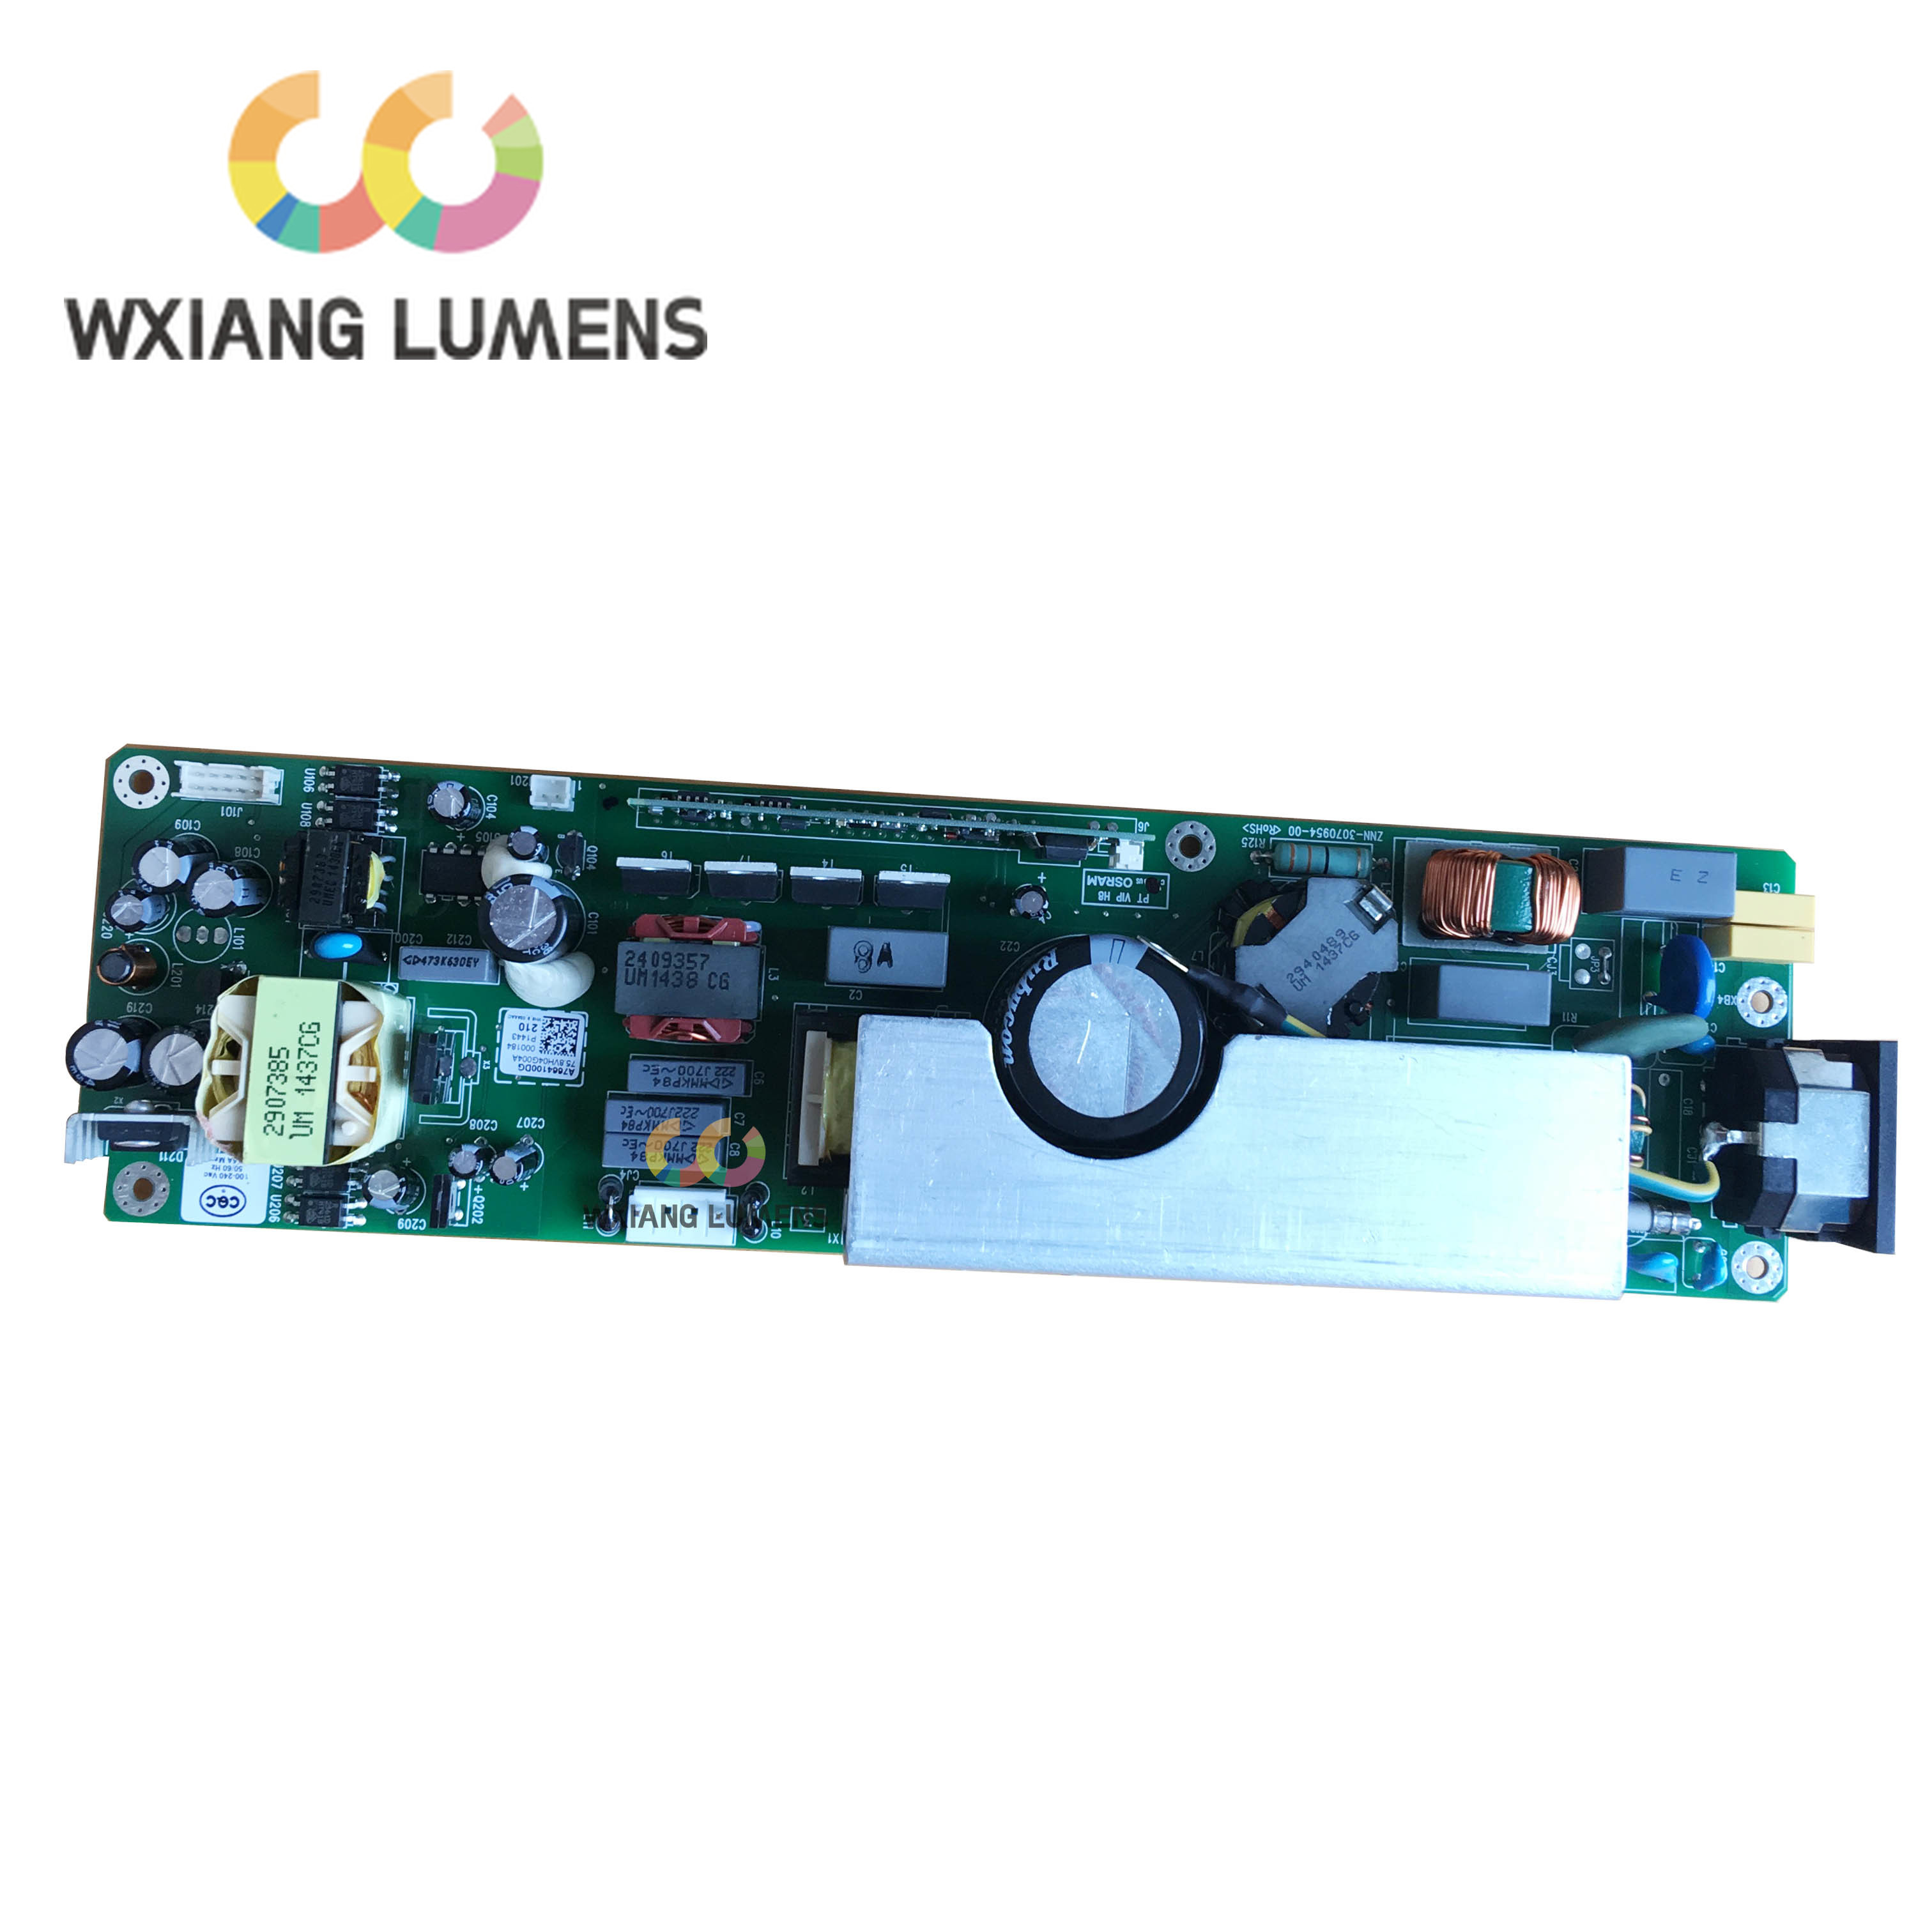 Projector Main Power Supply Board A7664100DG 75.8VH04G004A Fit For Optoma HD141X HD26 HDF536 EH341 GT1080 OPX225 OEX925 HNF736